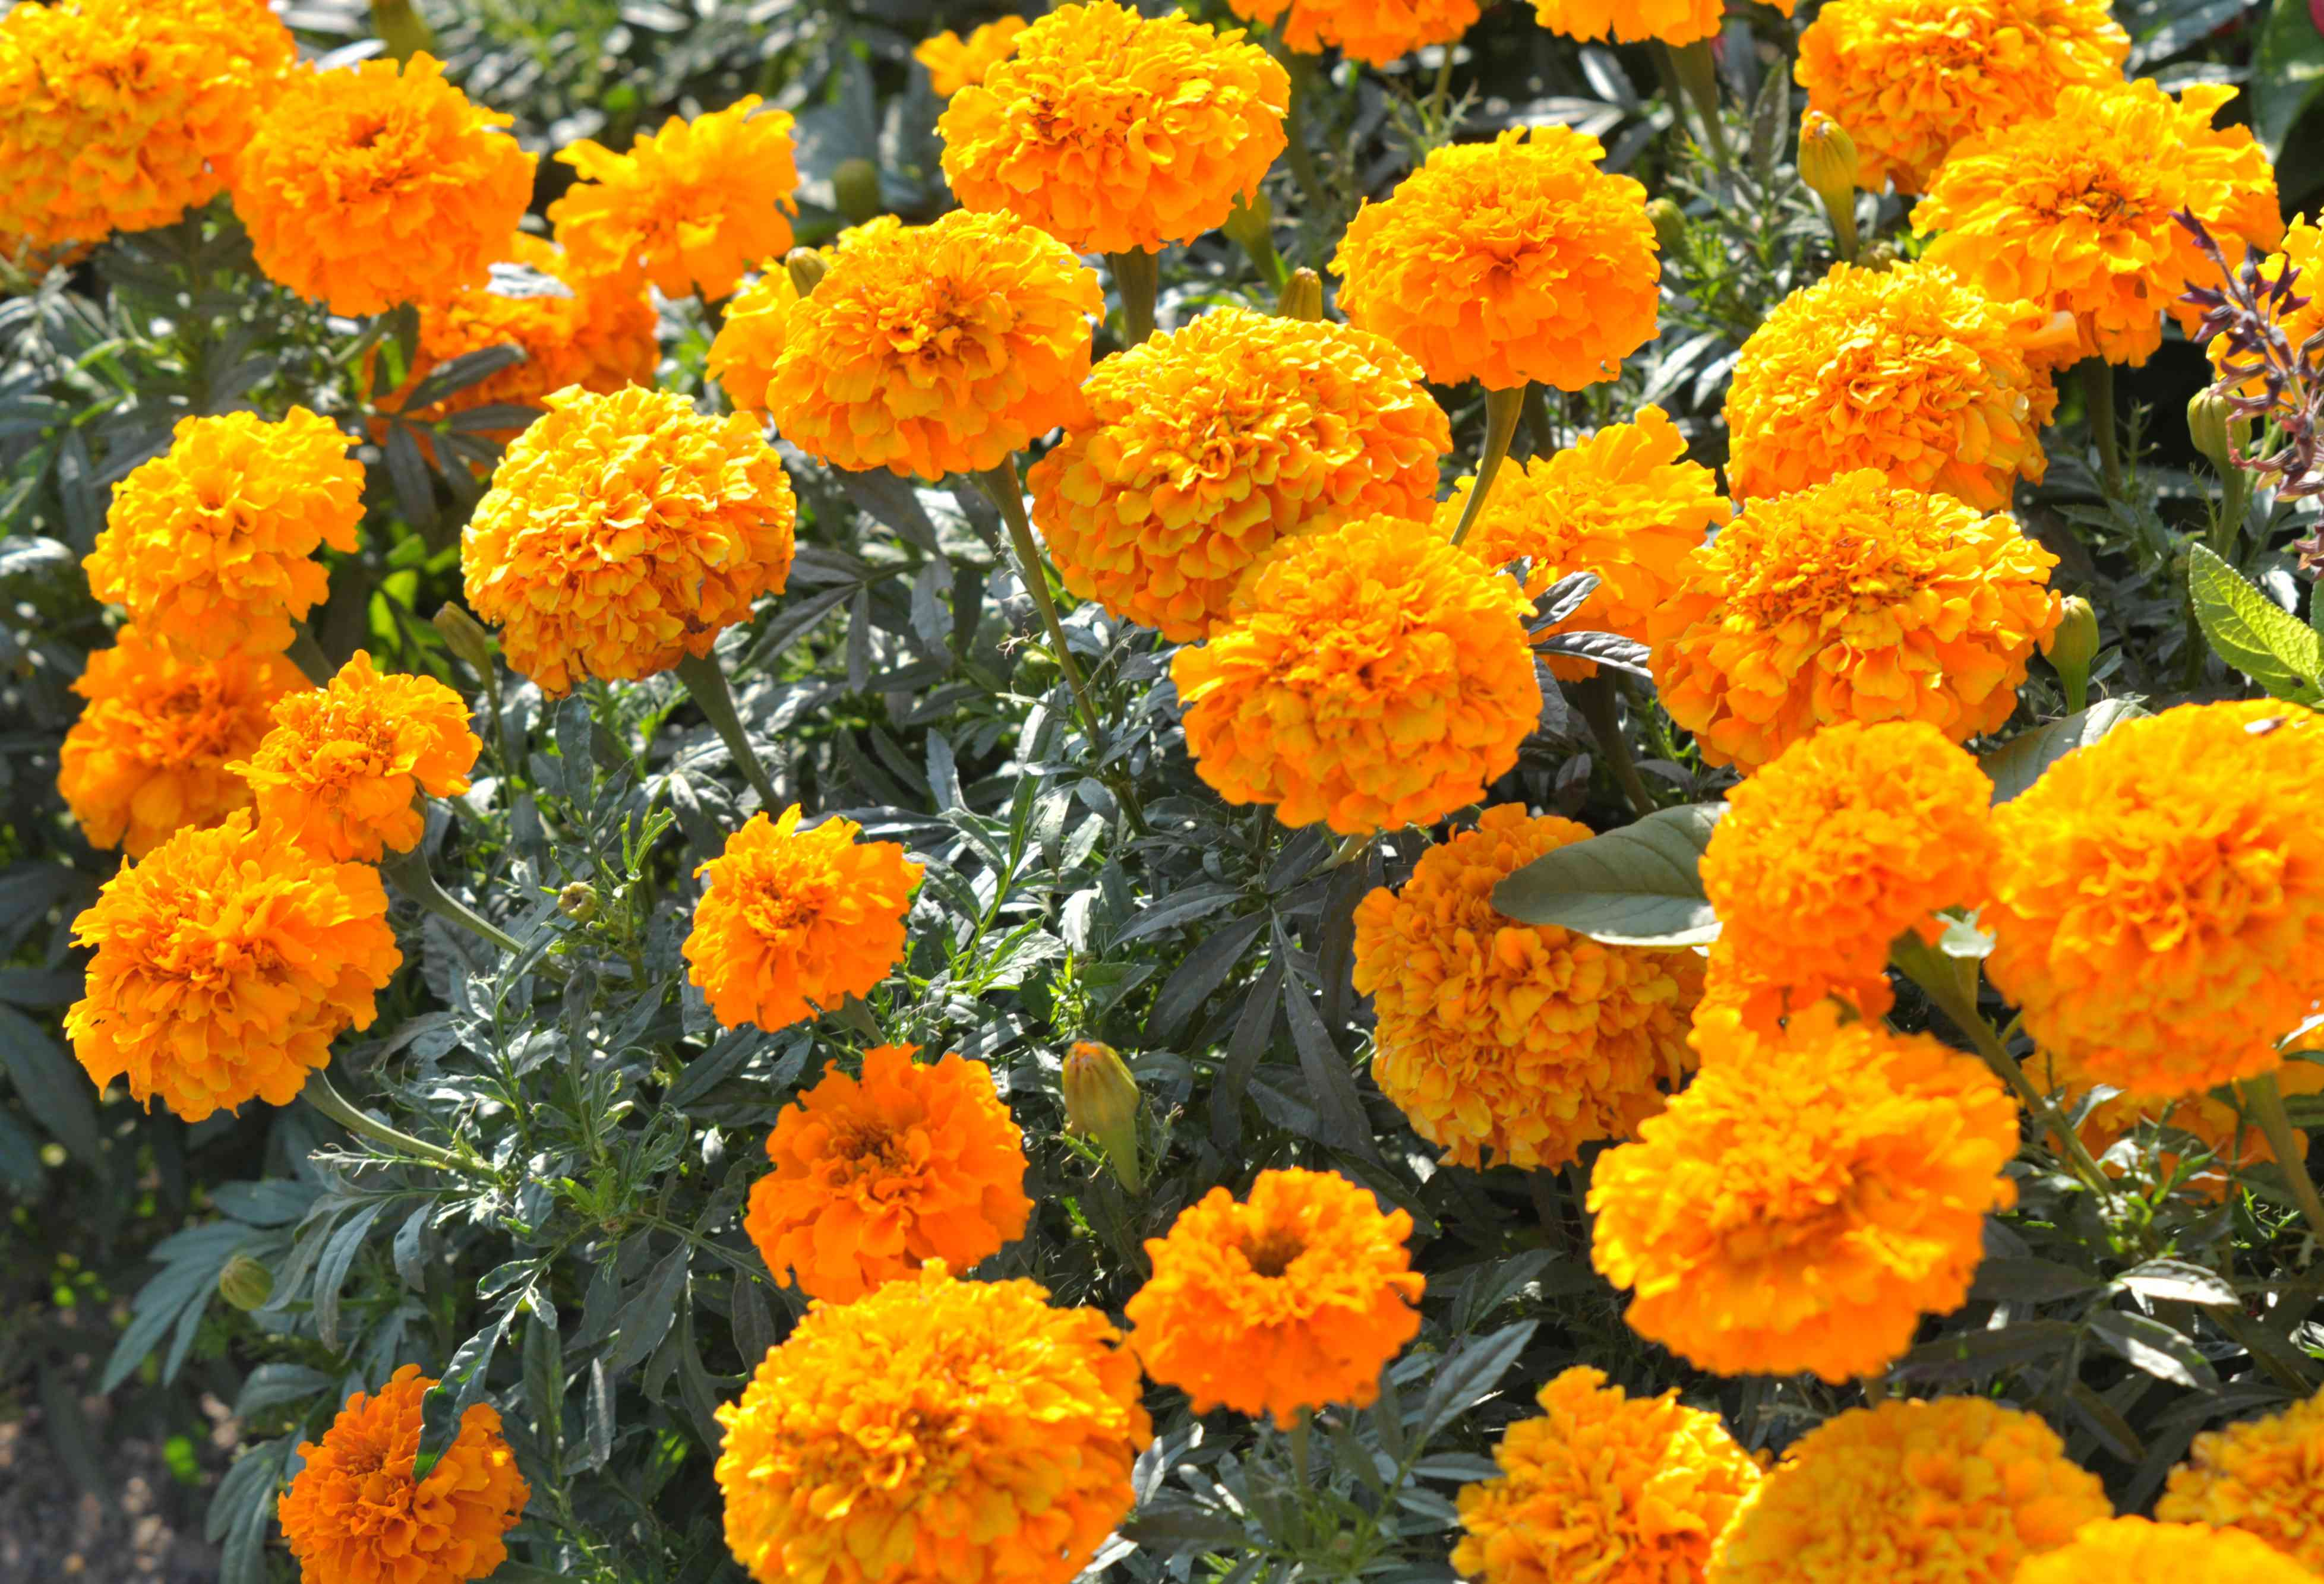 African marigold flowers with orange fluffy clustered petals